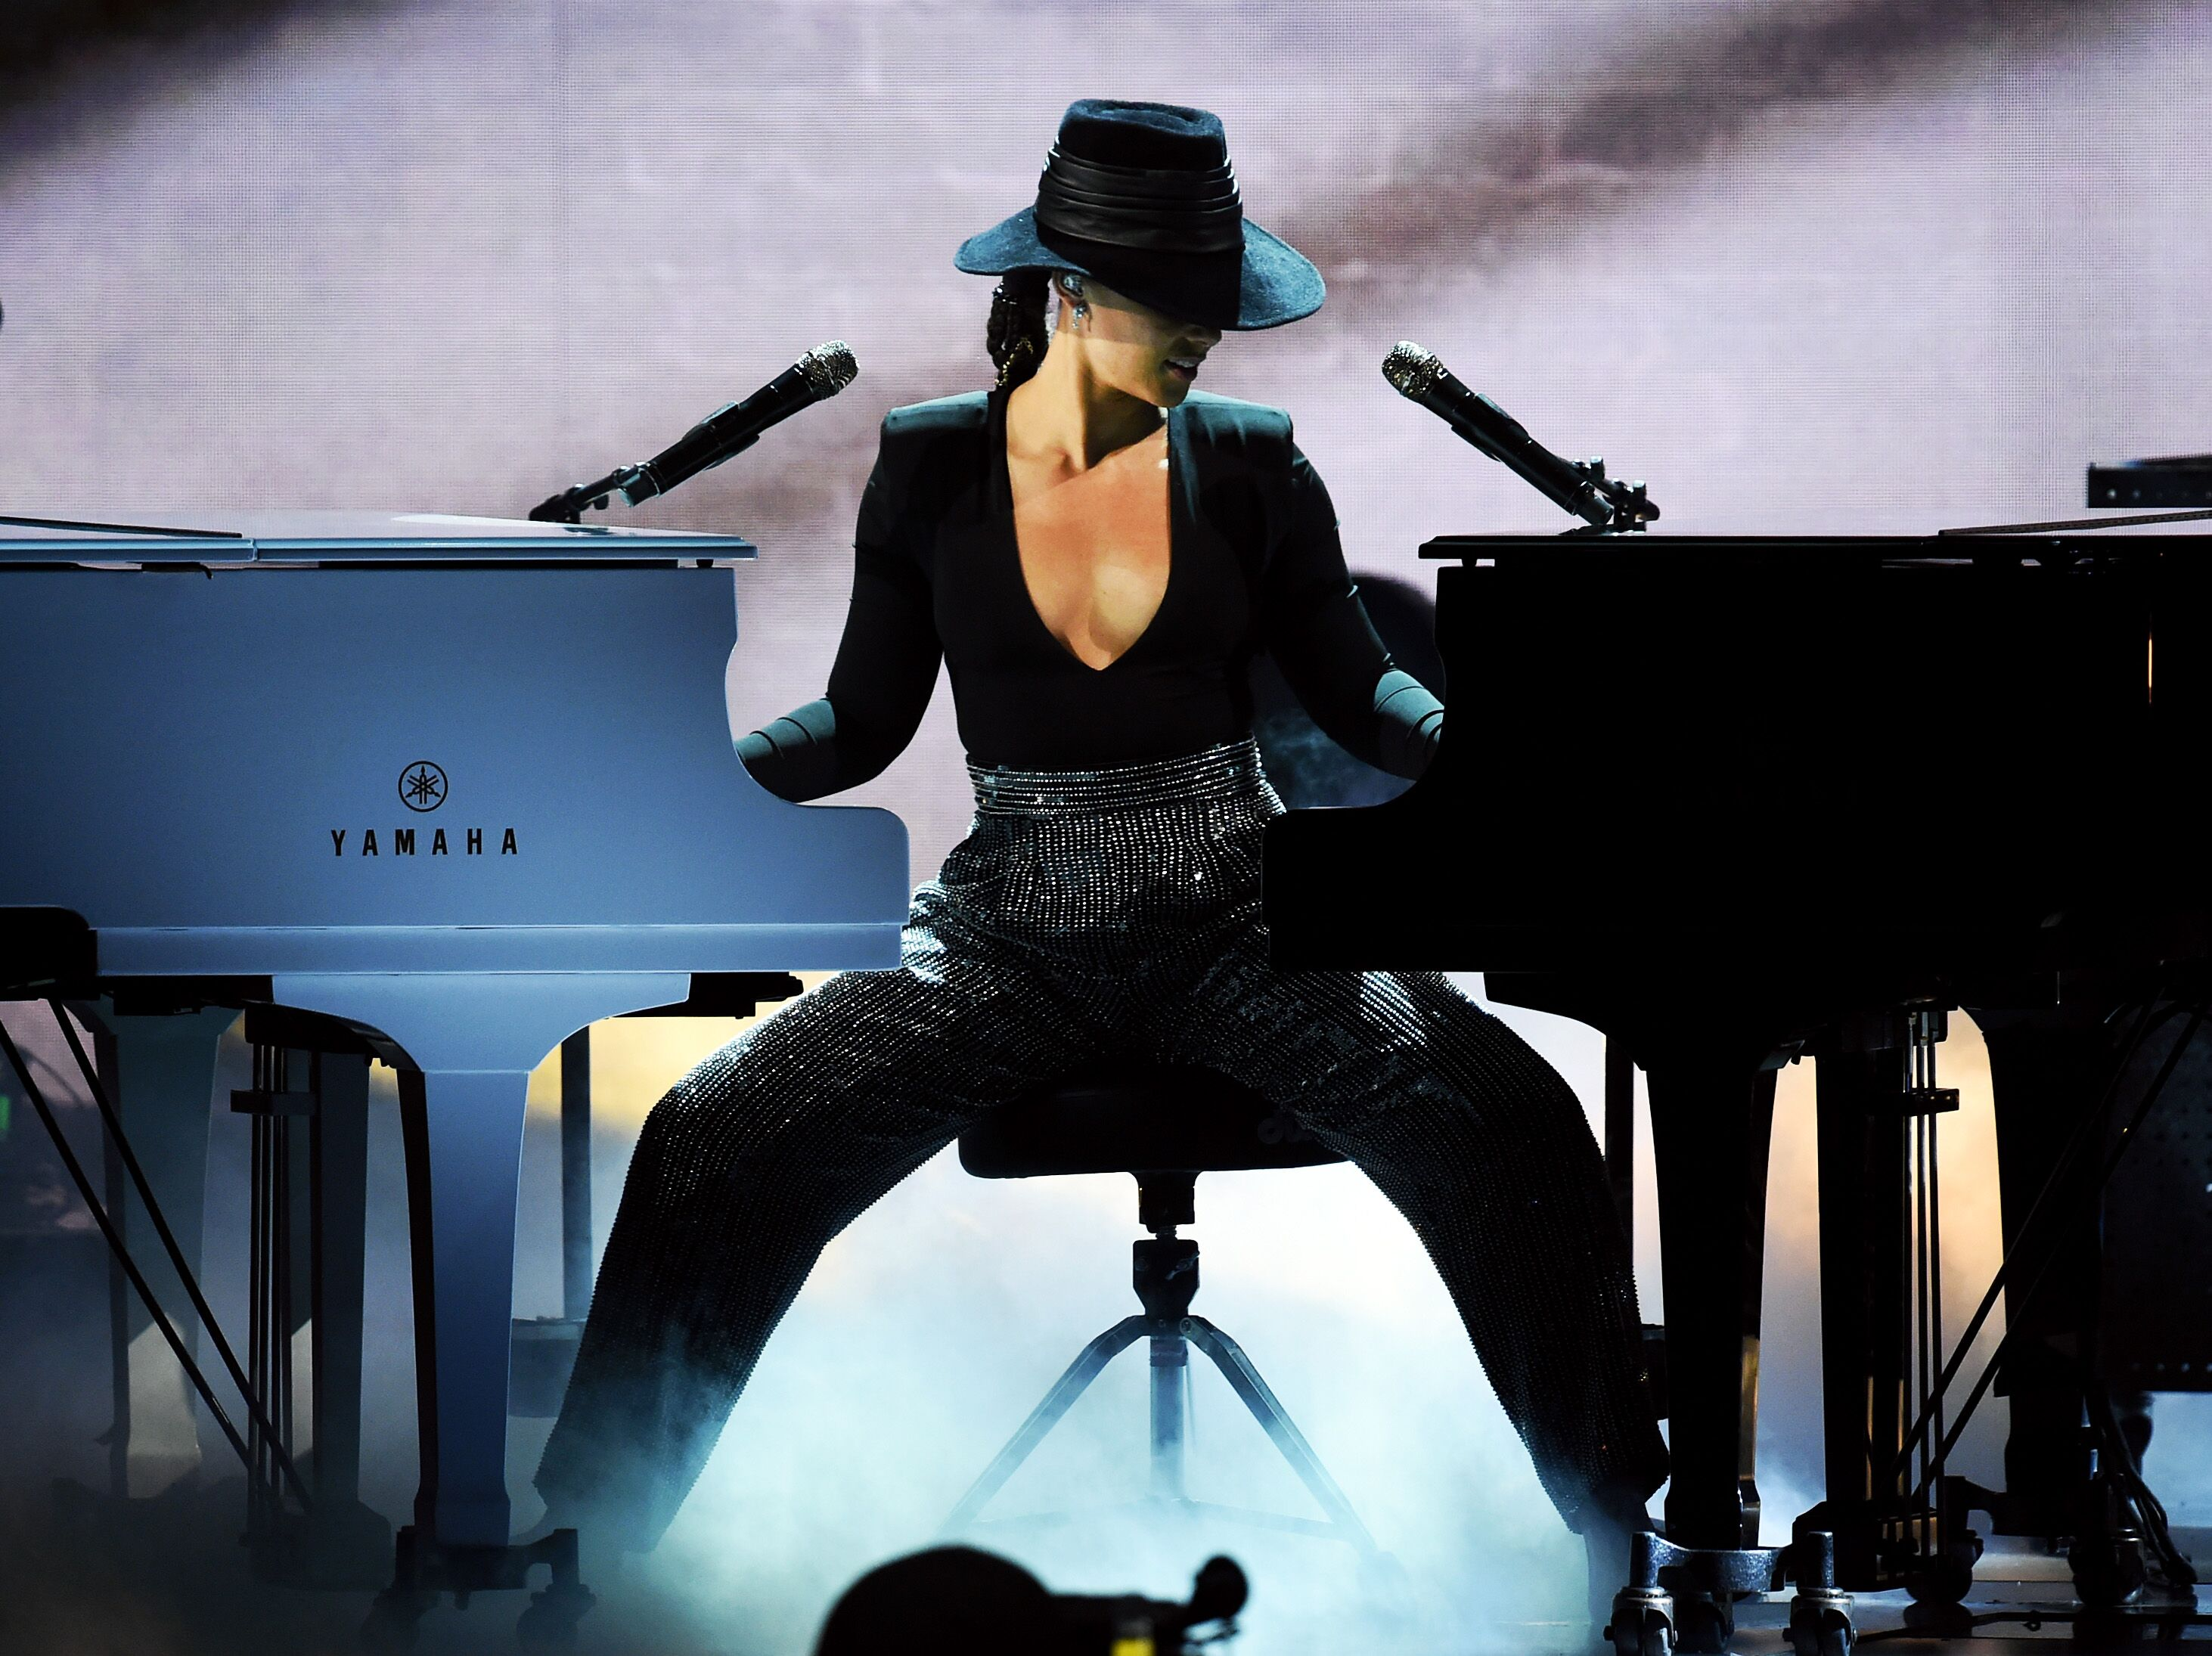 Singer/songwriter Alicia Keys in concert/ Source: Getty Images